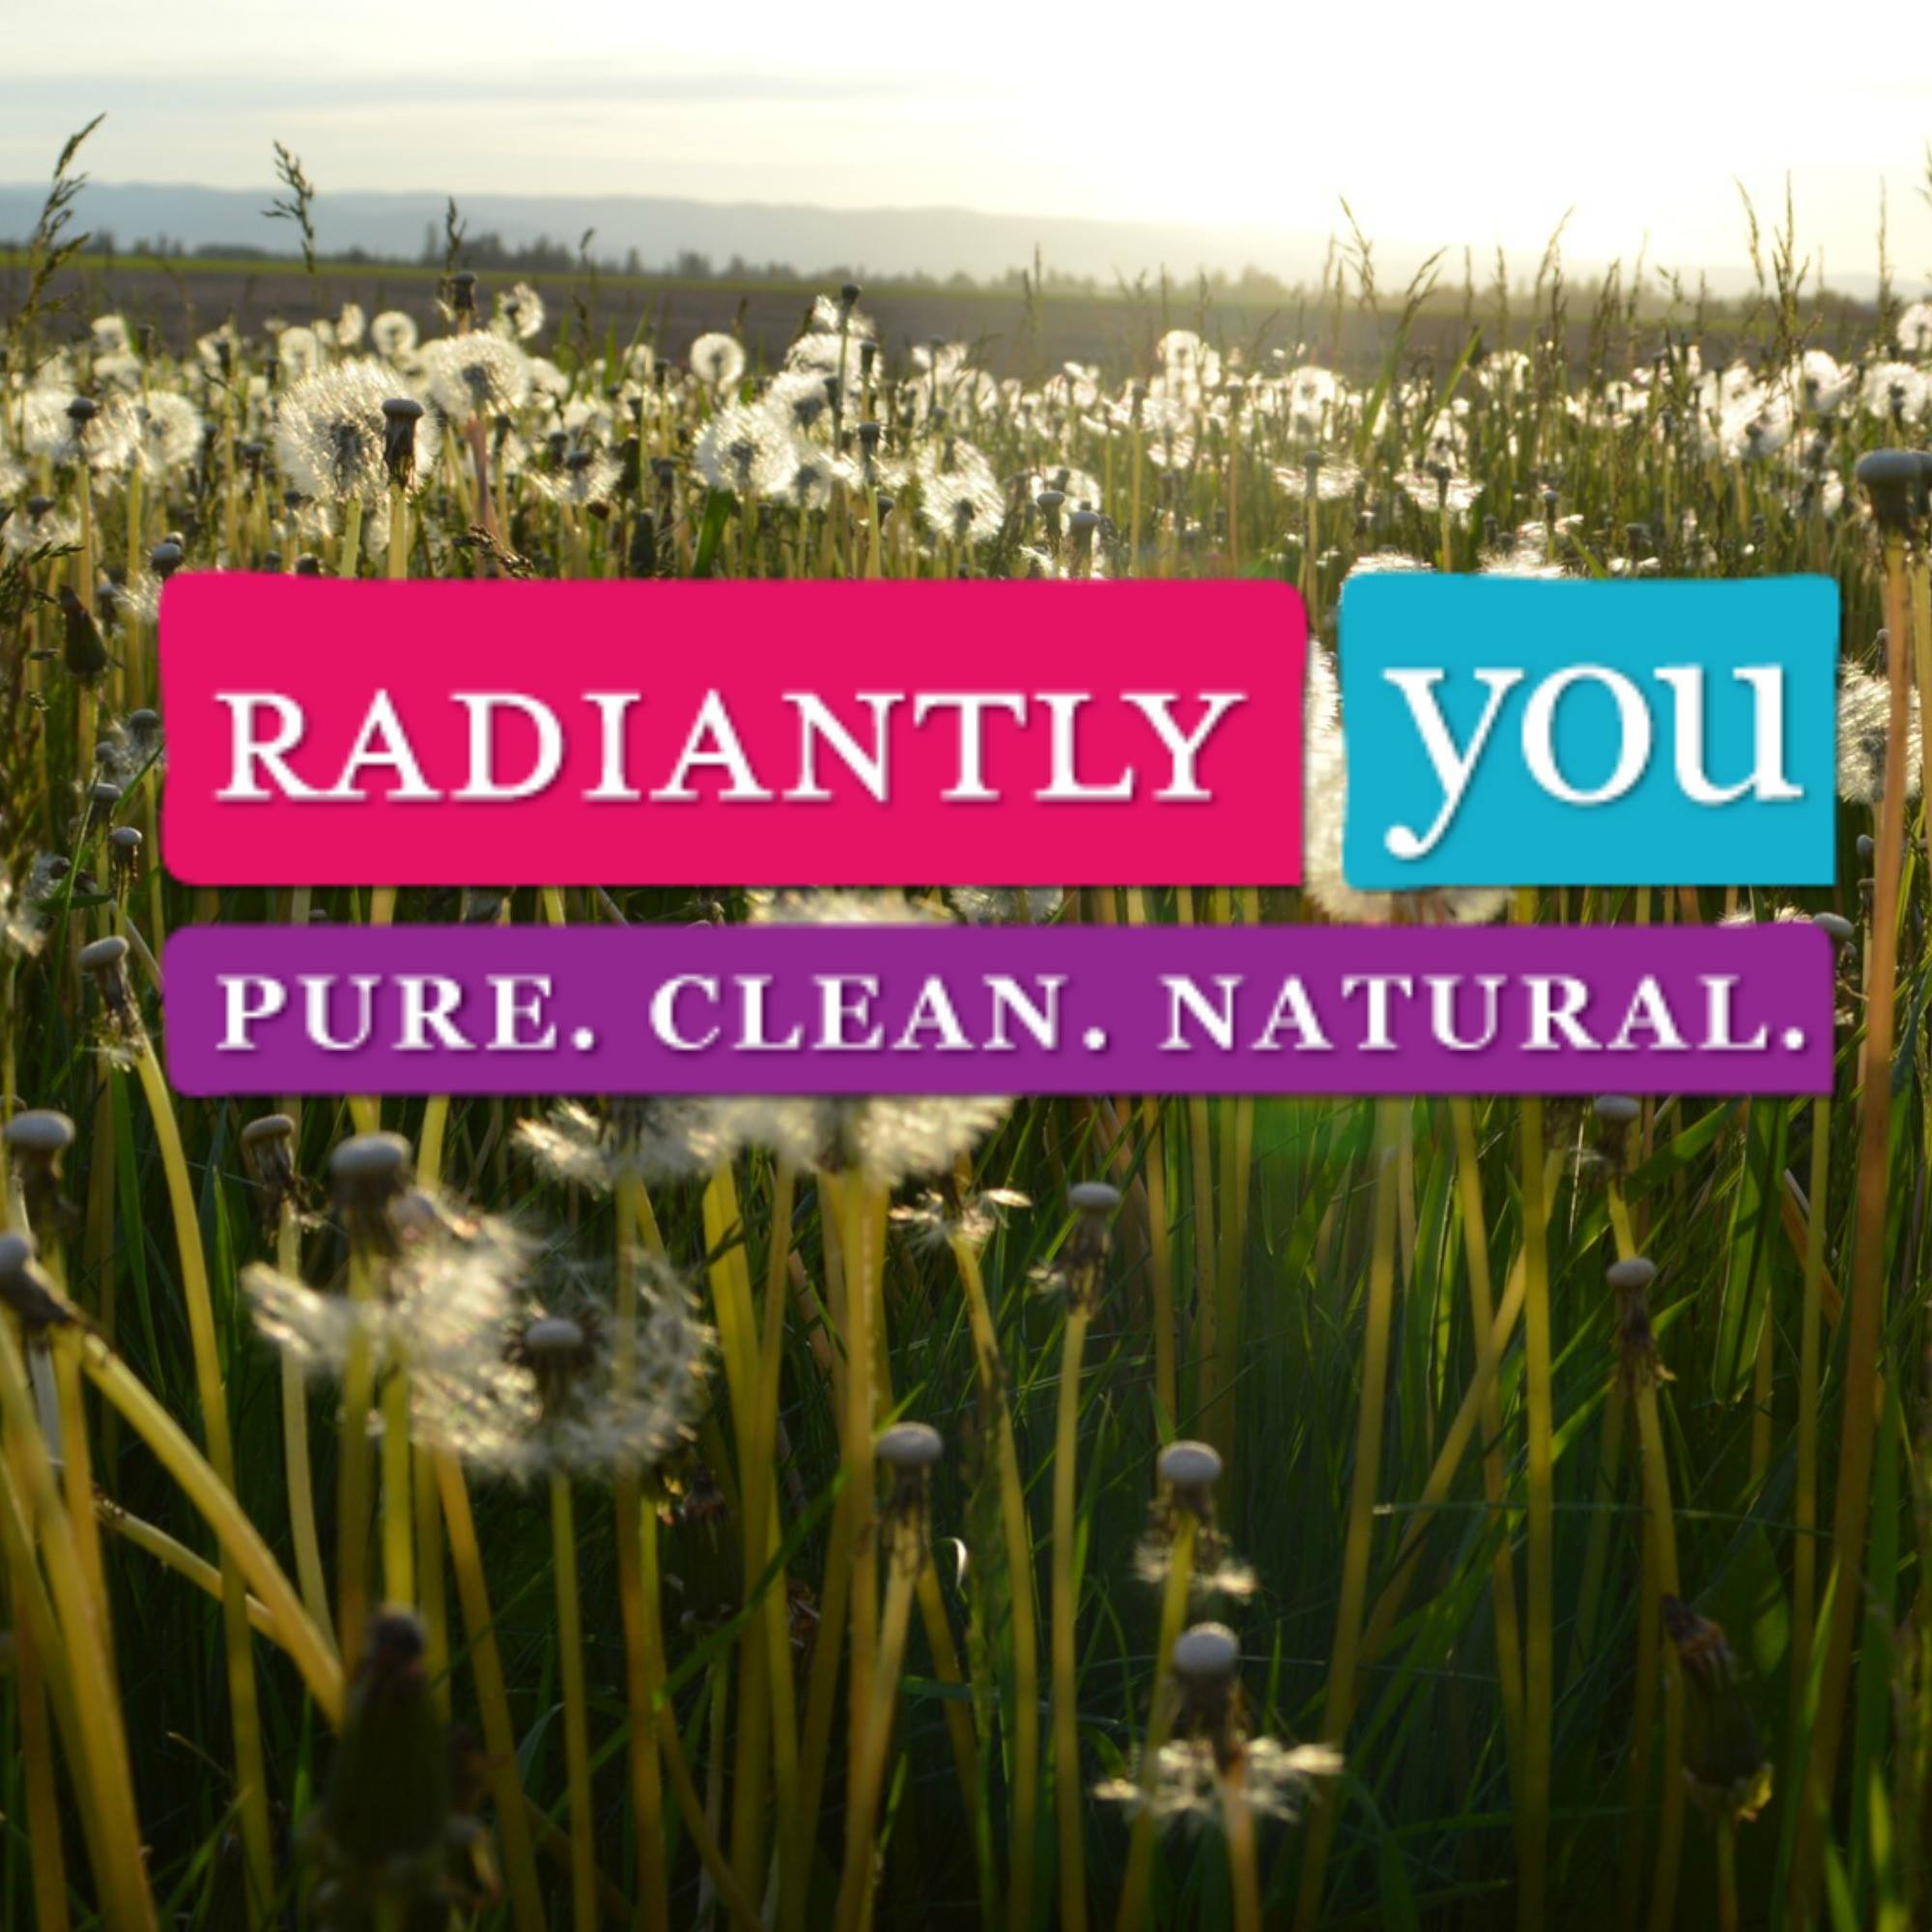 Radiantly You-Affordable Home Organic Products for Your Family